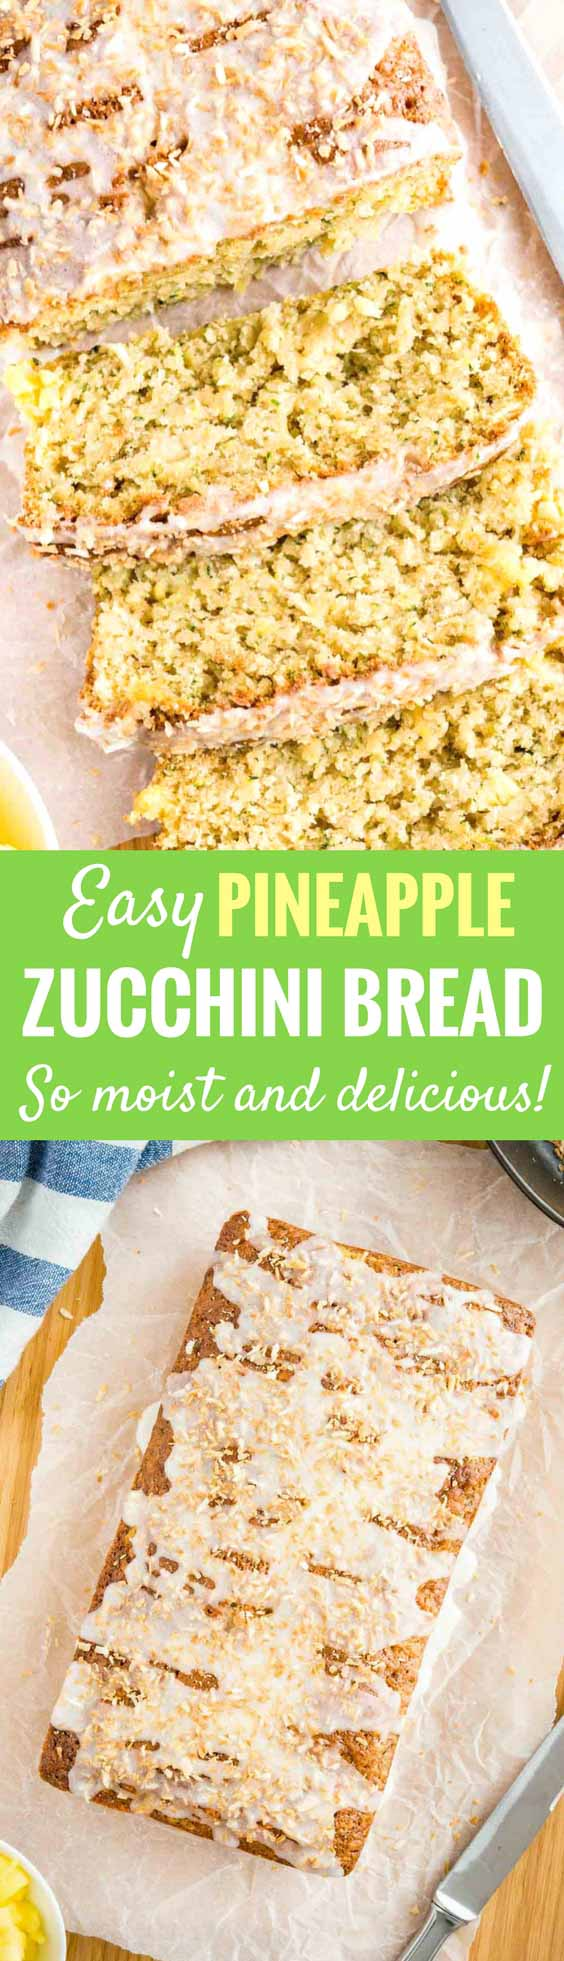 Zucchini Pineapple Bread with coconut and crushed pineapple makes a delicious tropical treat! This moist quick bread recipe is a great way to use up zucchinis and keeps fresh for days. Makes a perfect breakfast or afternoon snack! #zucchinirecipes #quickbread #zucchinibread #baking